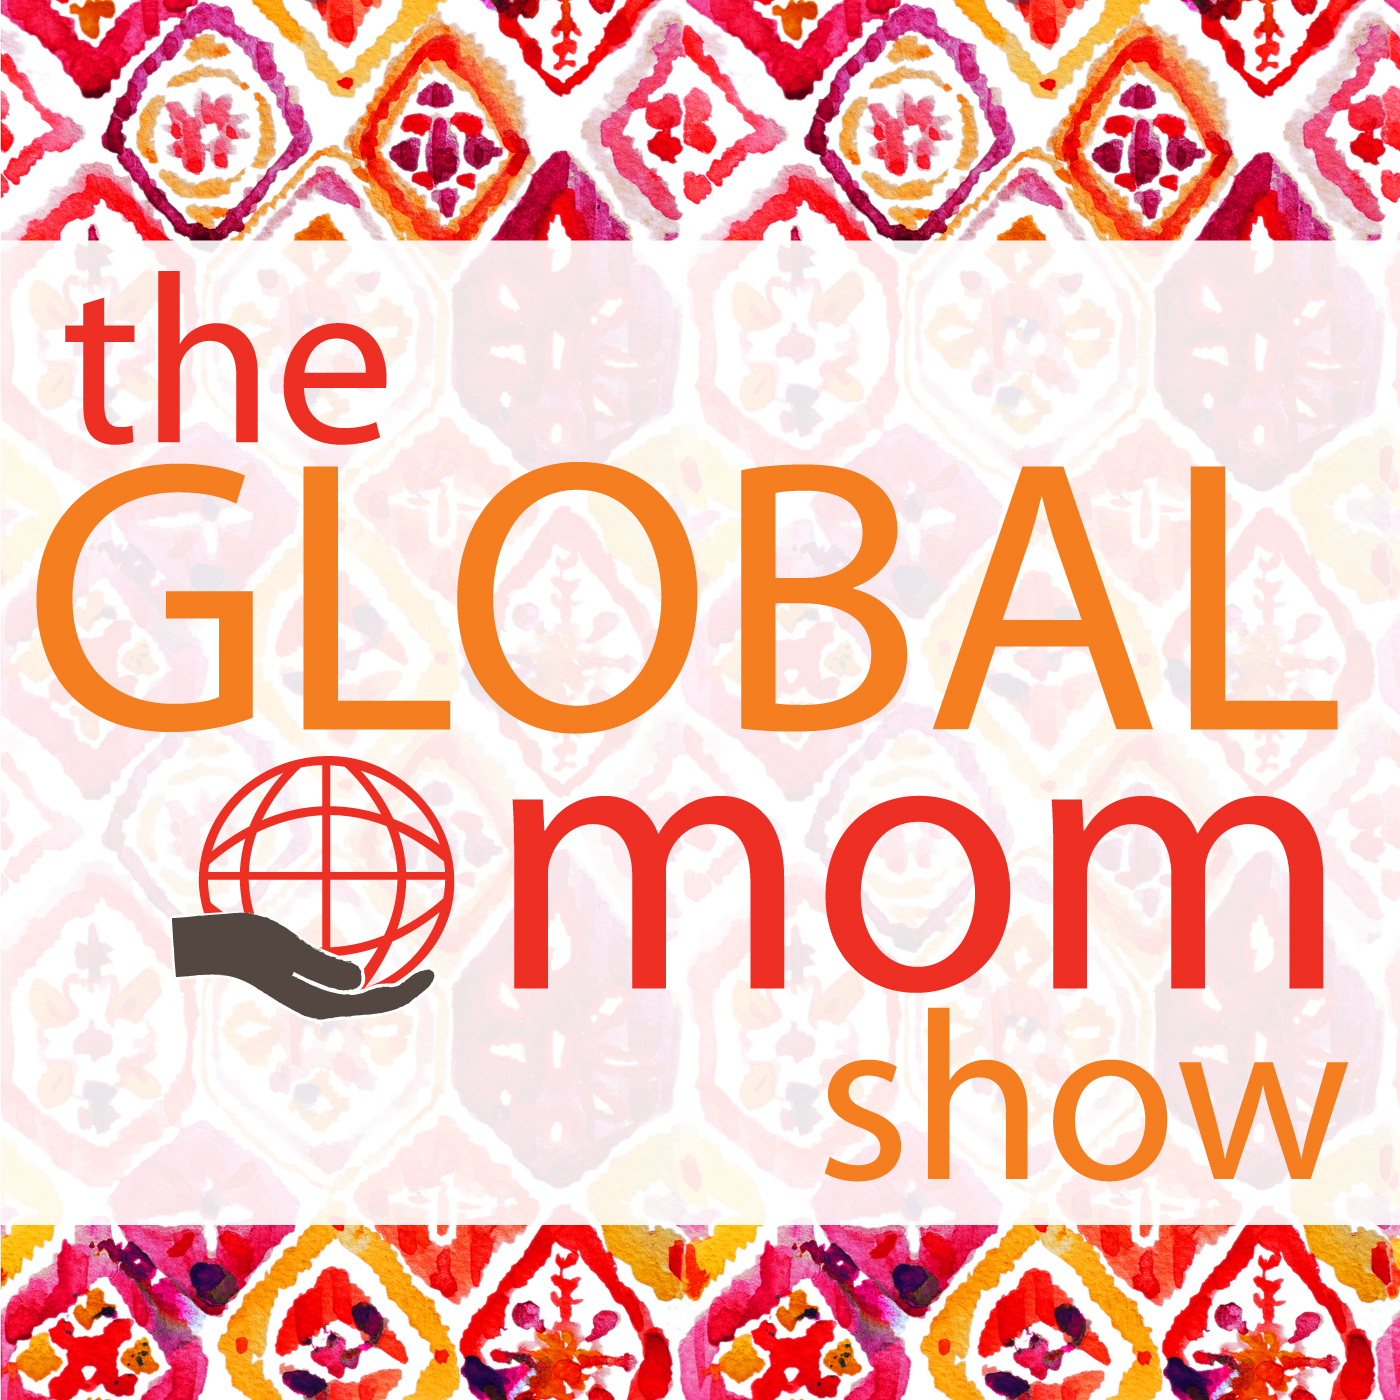 Anjelica Malone Episode 30 of The Global Mom Show